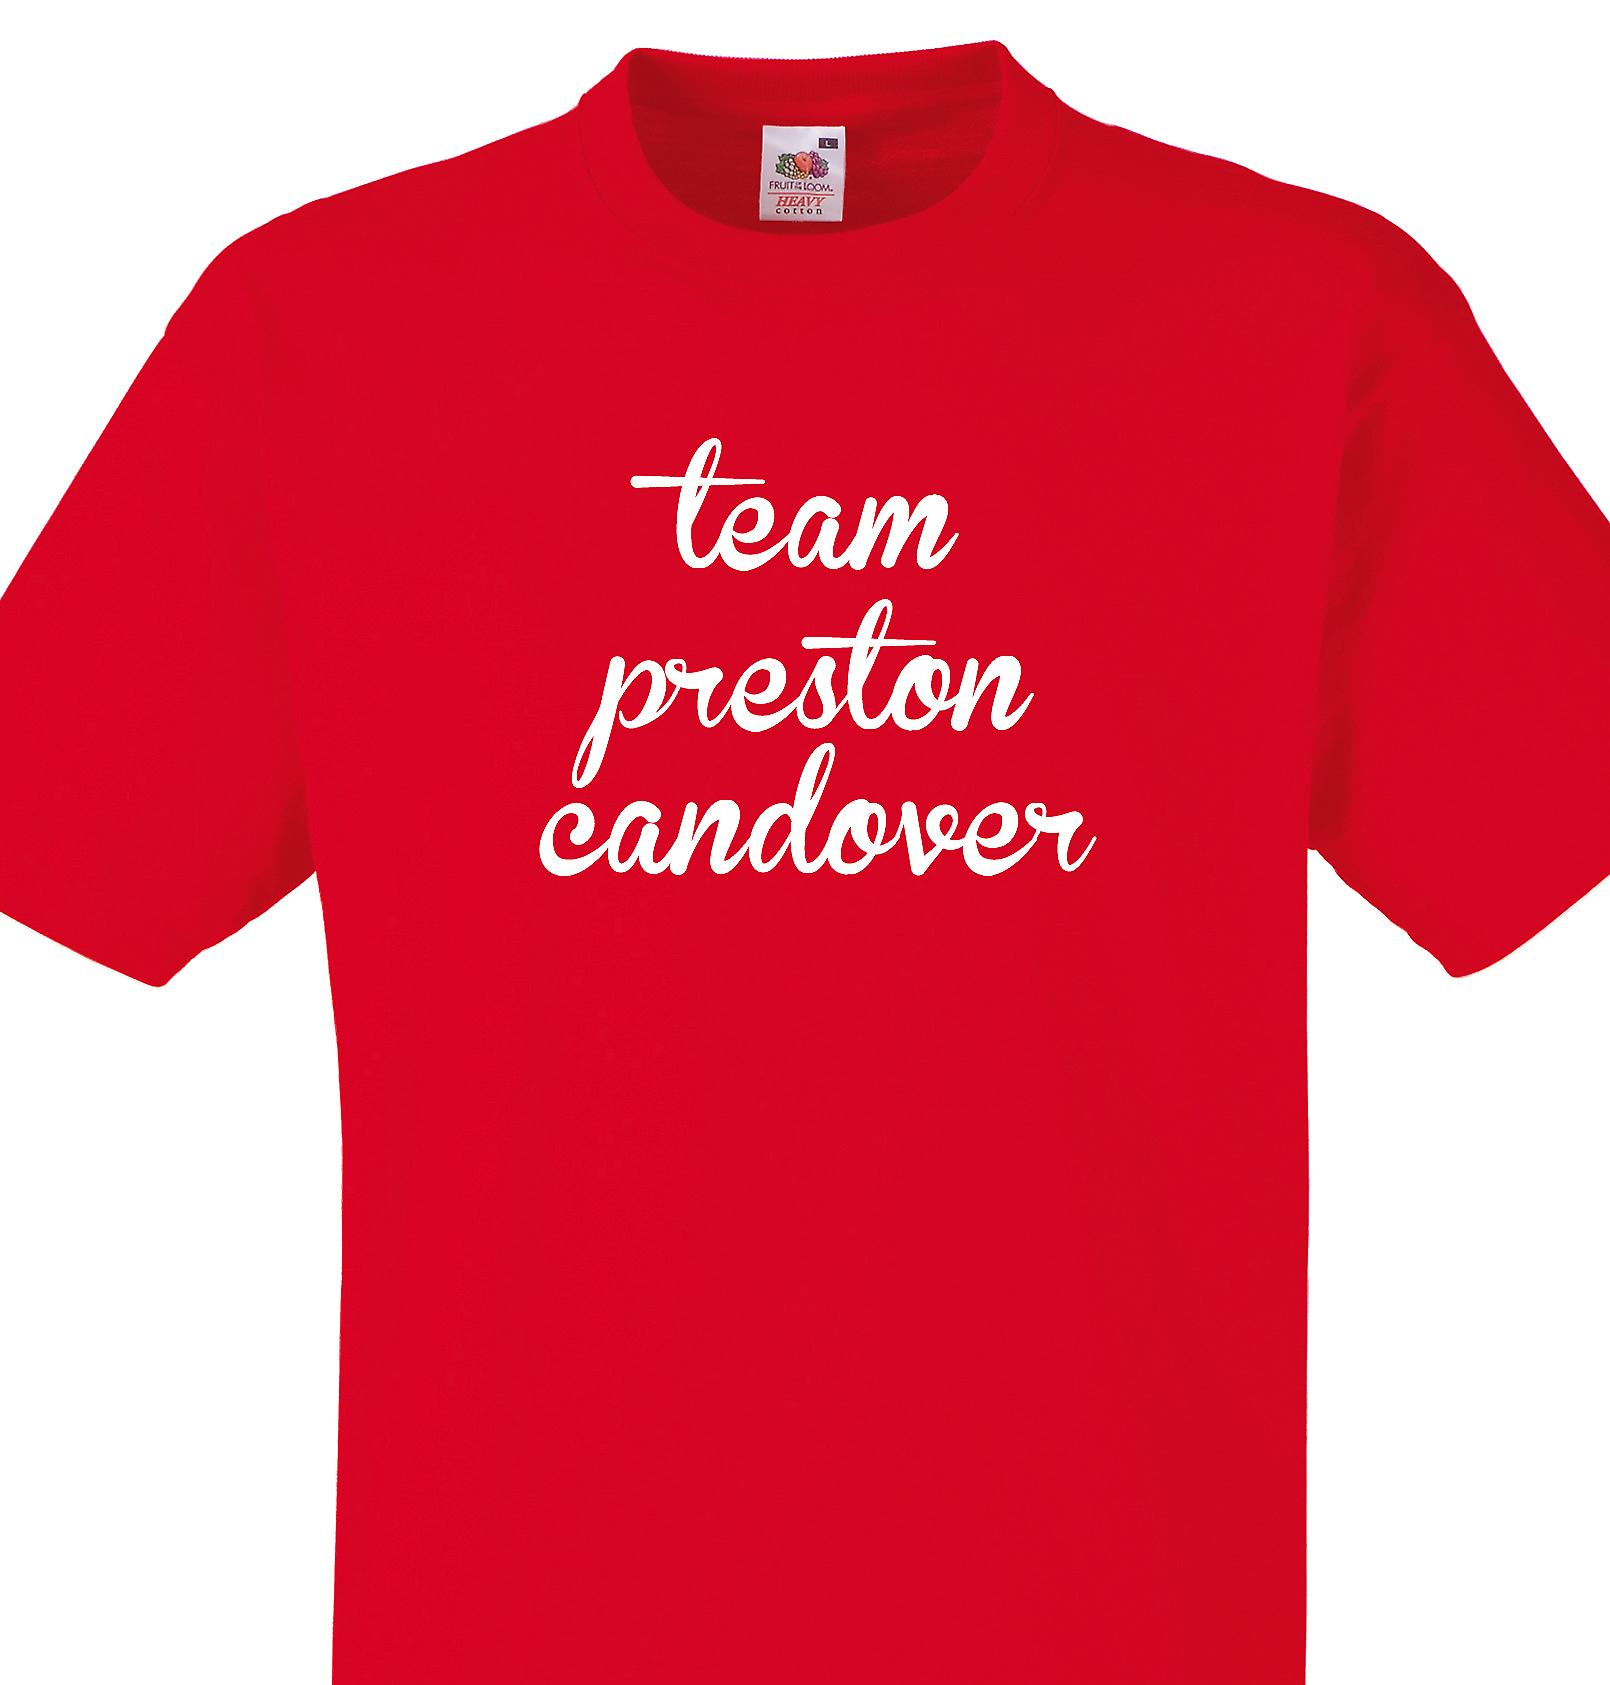 Team Preston candover Red T shirt